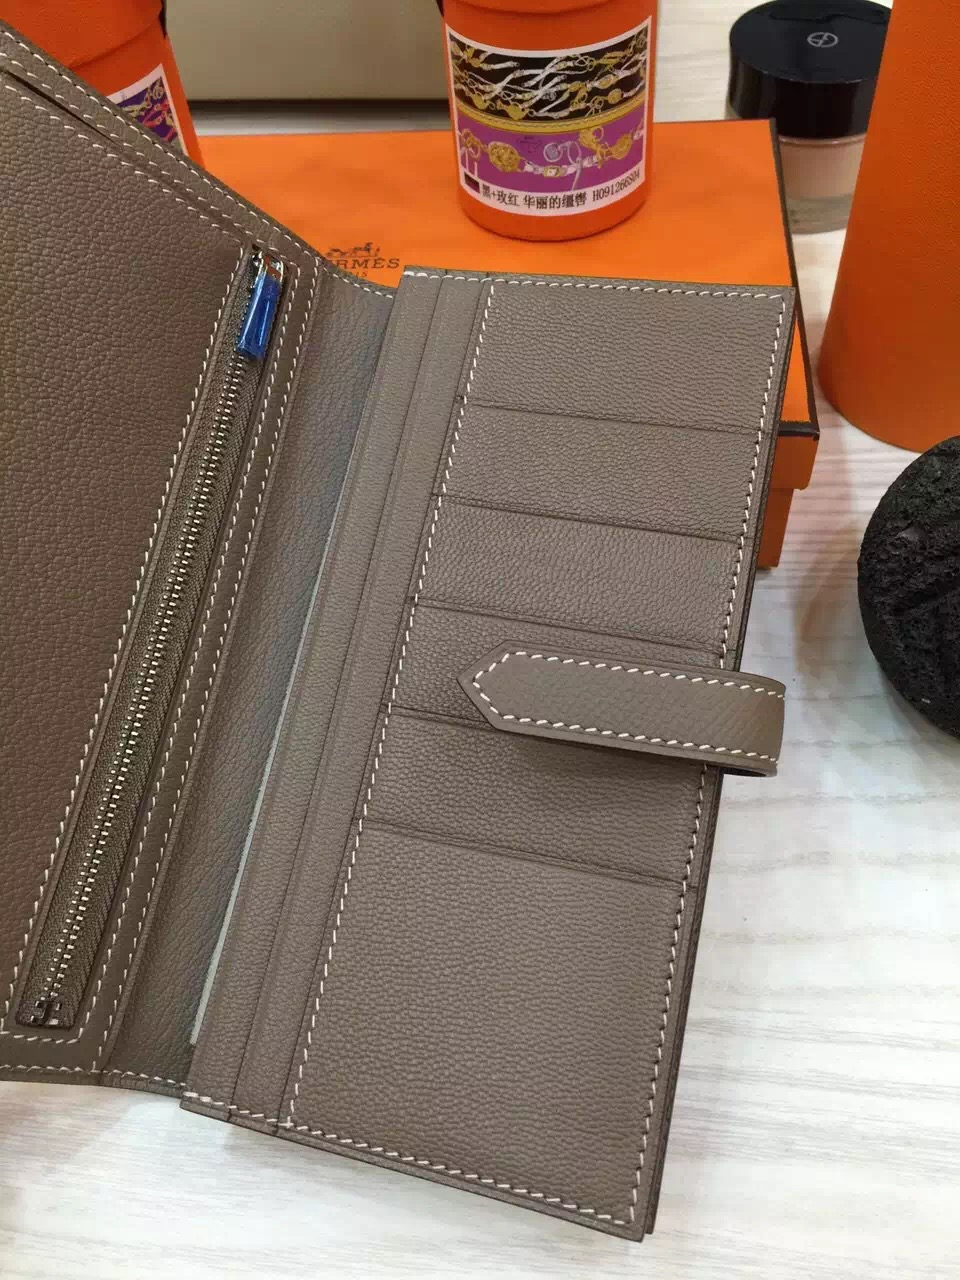 Hand Stitching Hermes Etoupe Grey Epsom Leather Bearn Wallet Clutch Bag Silver Hardware